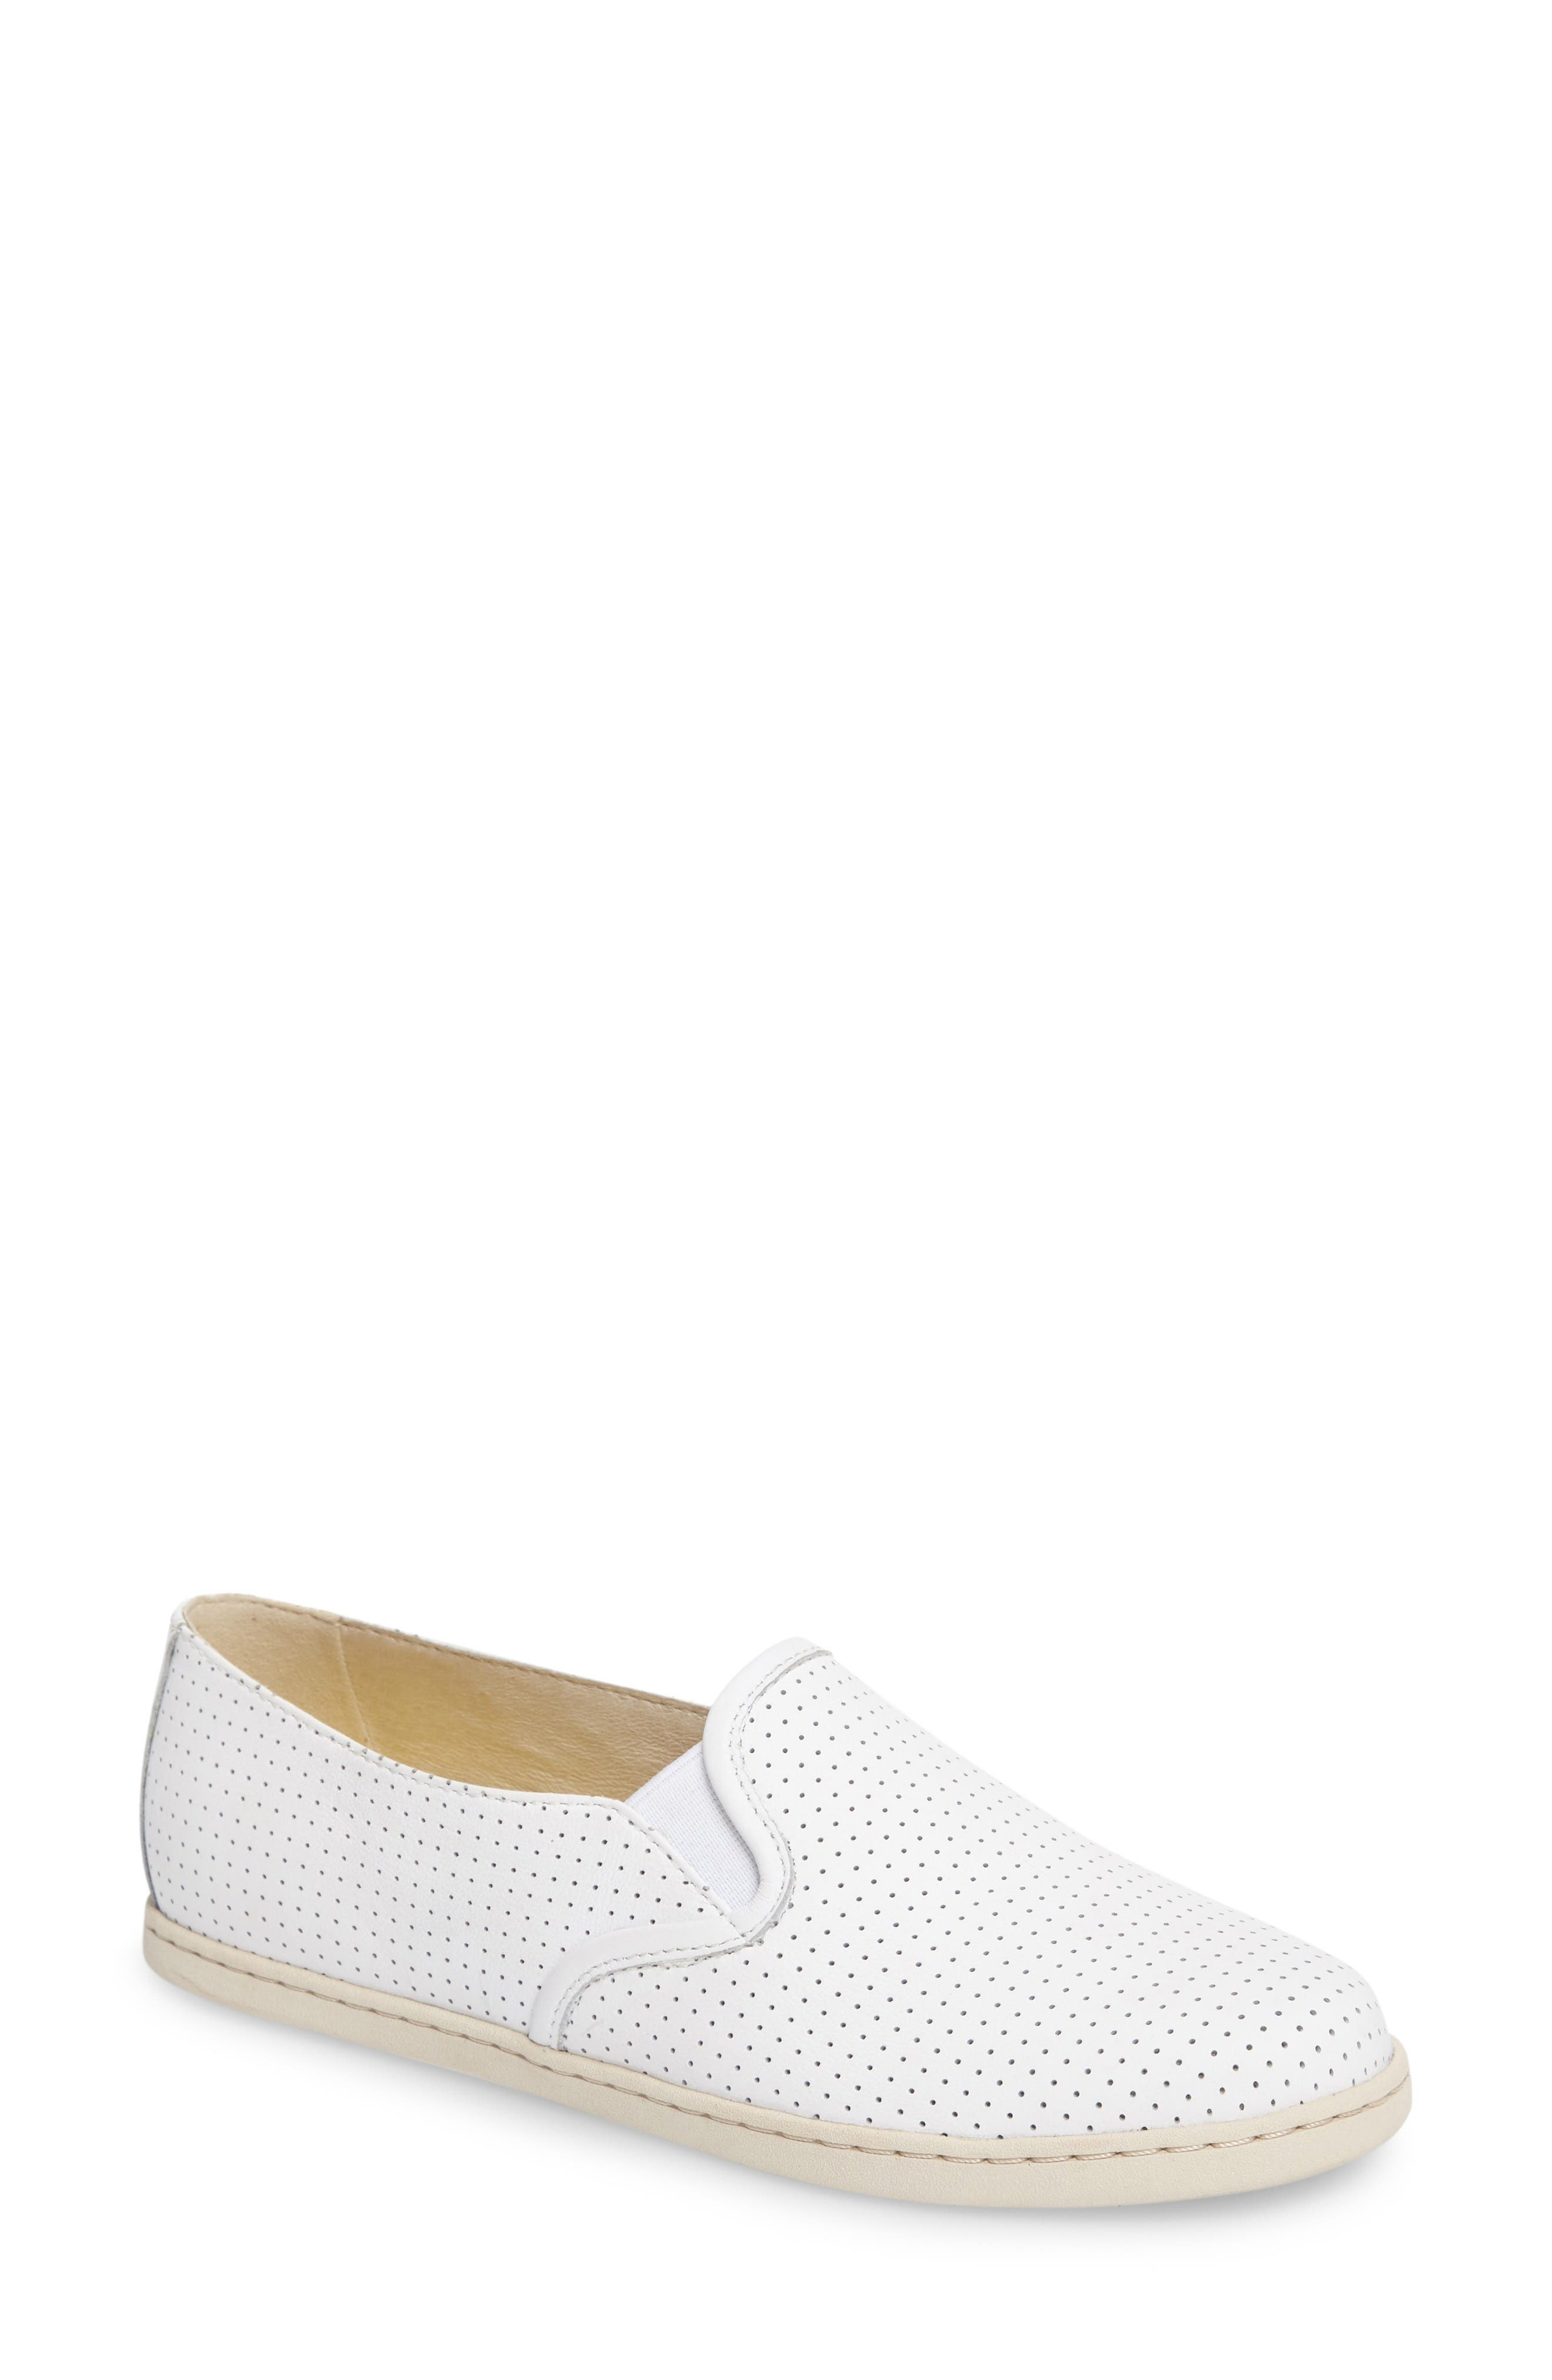 Alternate Image 1 Selected - Camper Uno Perforated Slip-On Sneaker (Women)